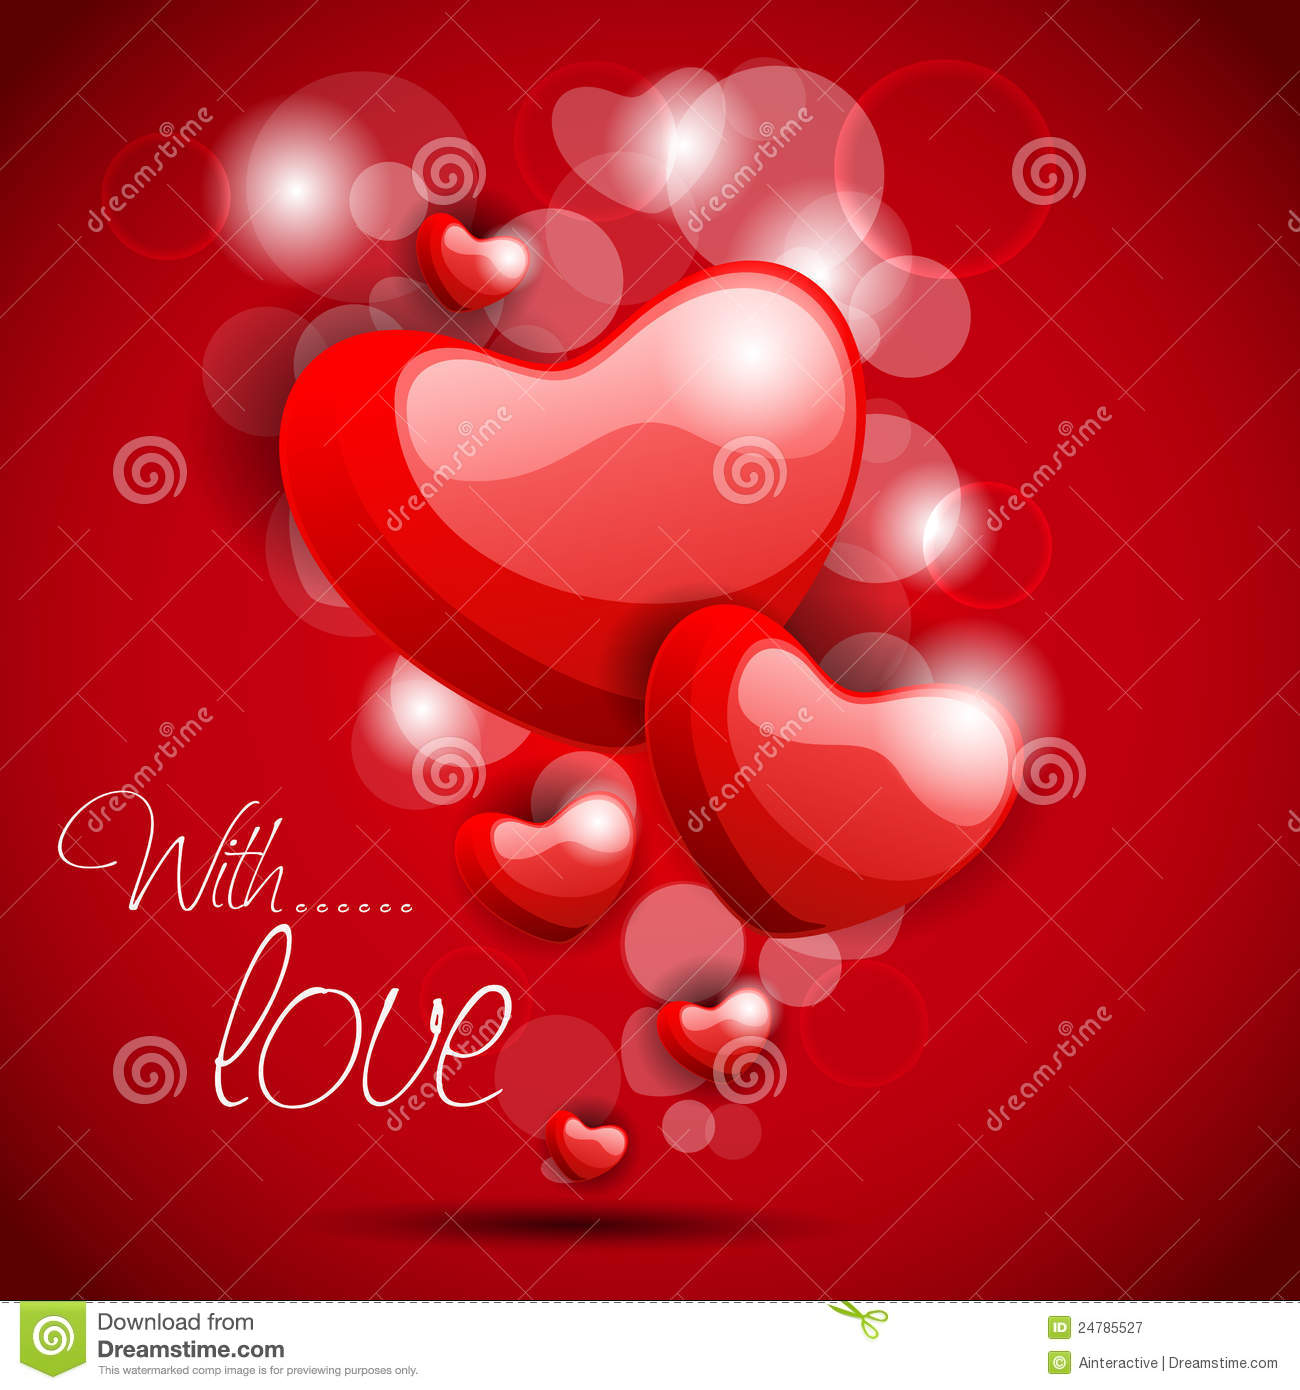 Glossy heart shape in red color on red background royalty - Dreaming about the color red ...